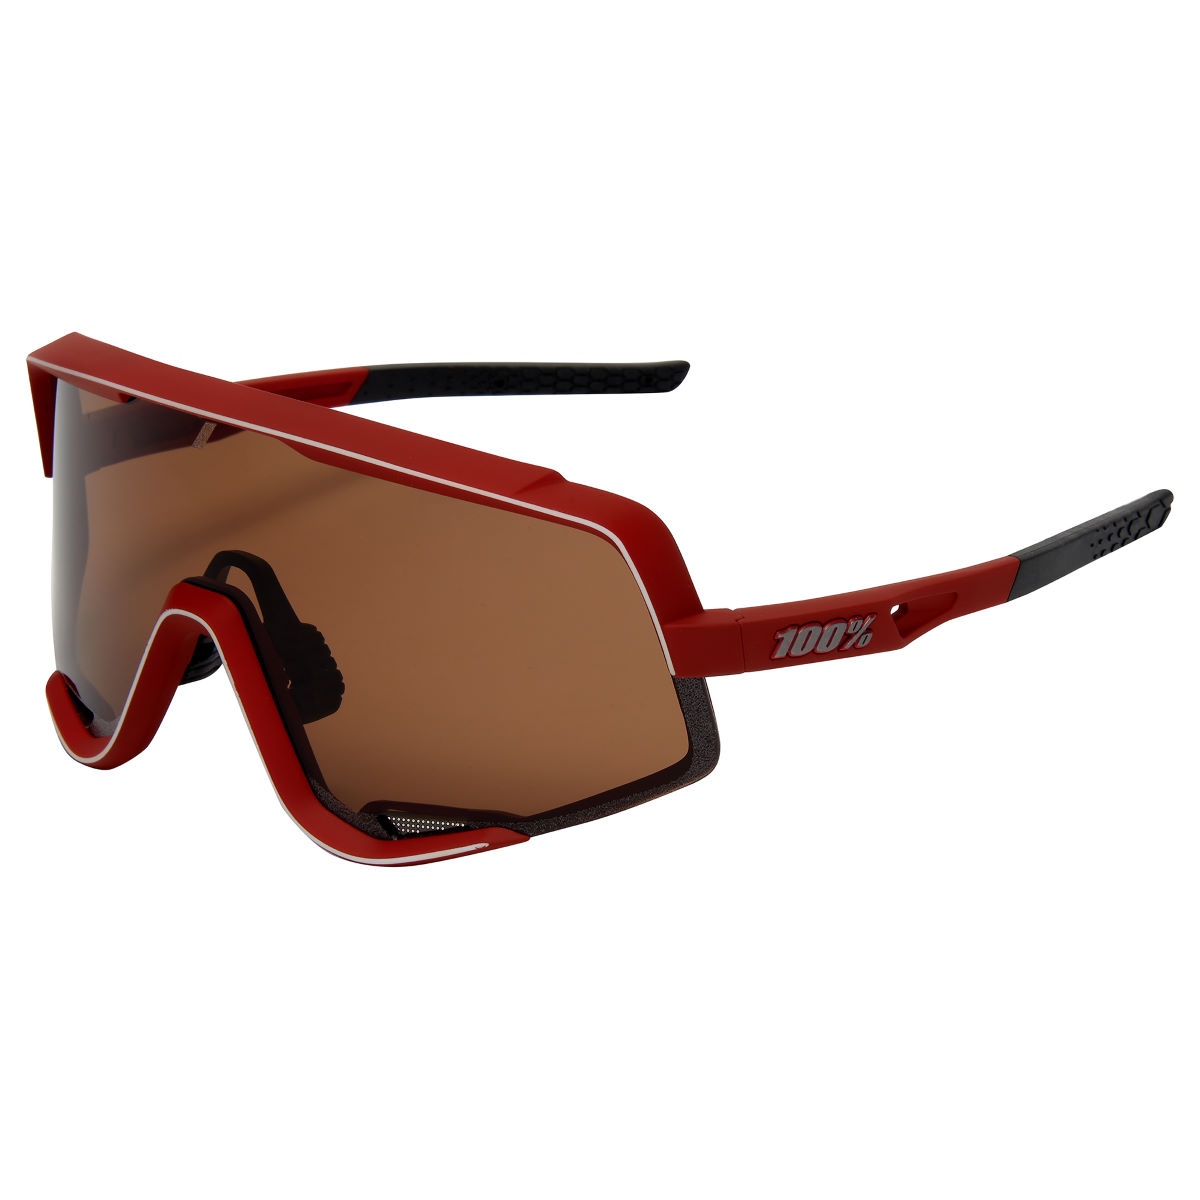 100% Glendale Soft Tact Bordeaux Sunglasses - One Size Burgundy